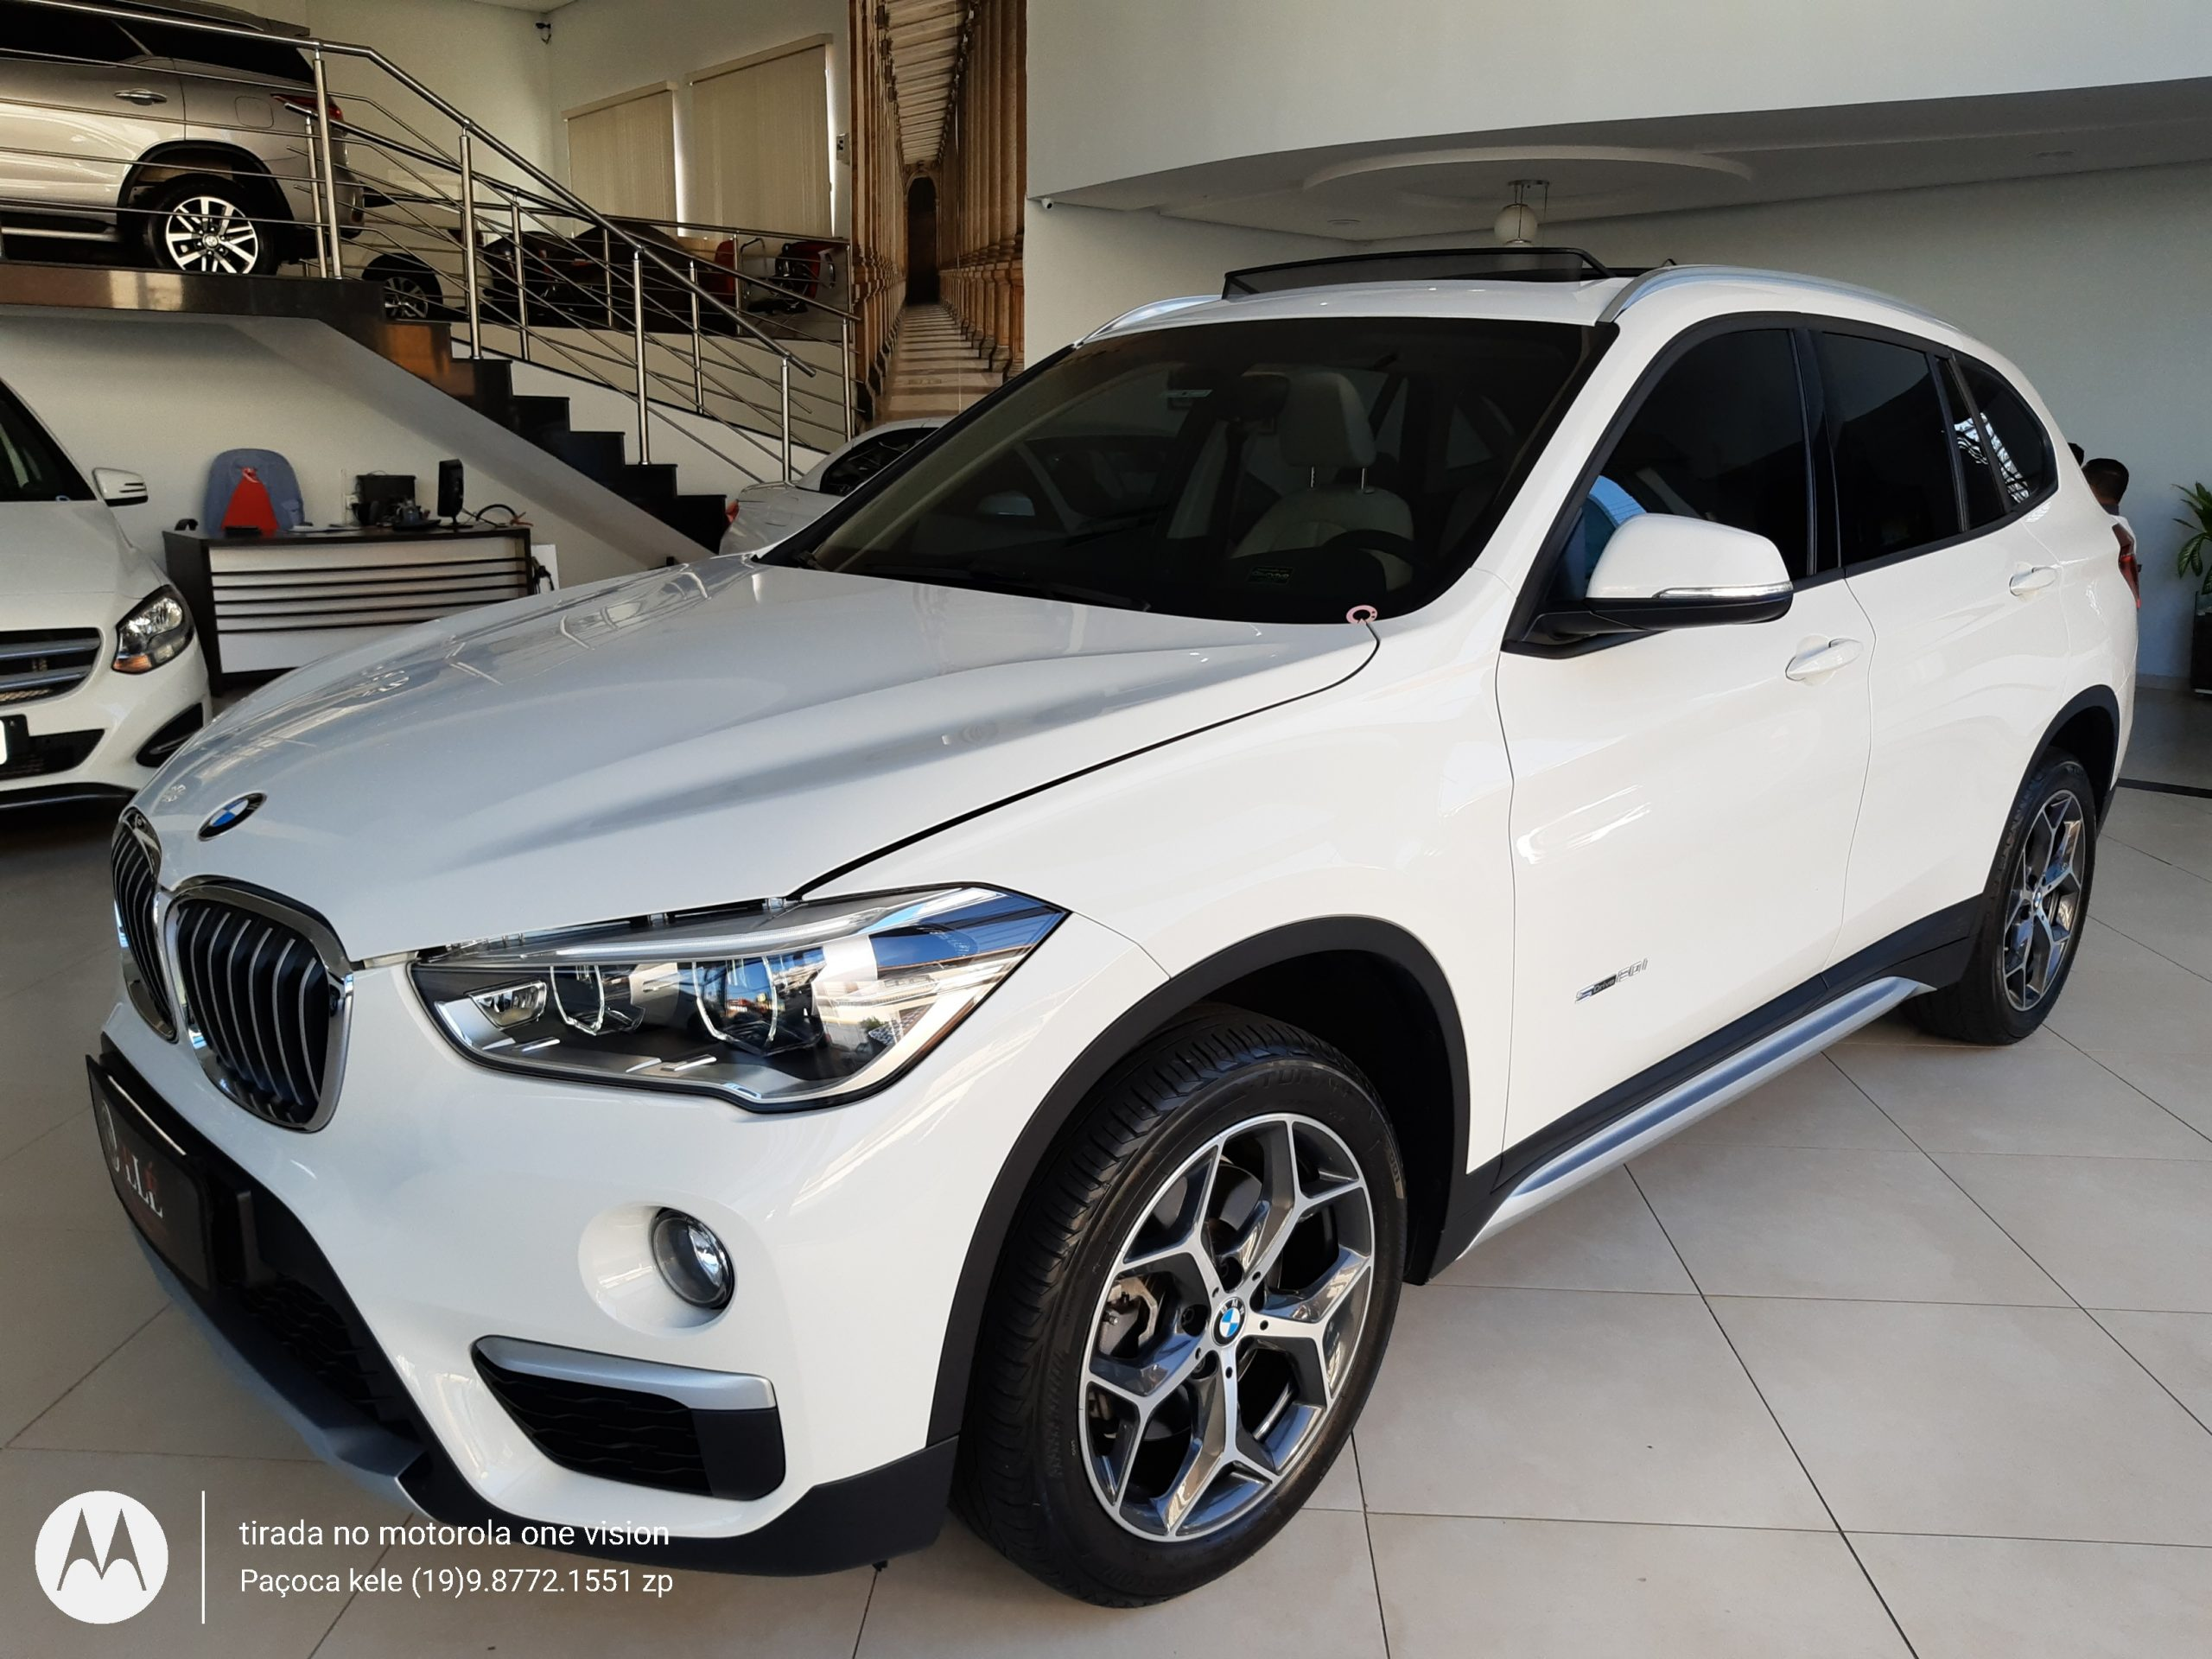 BMW X1 SDRIVE 20i X-LINE 2.0 TURBO